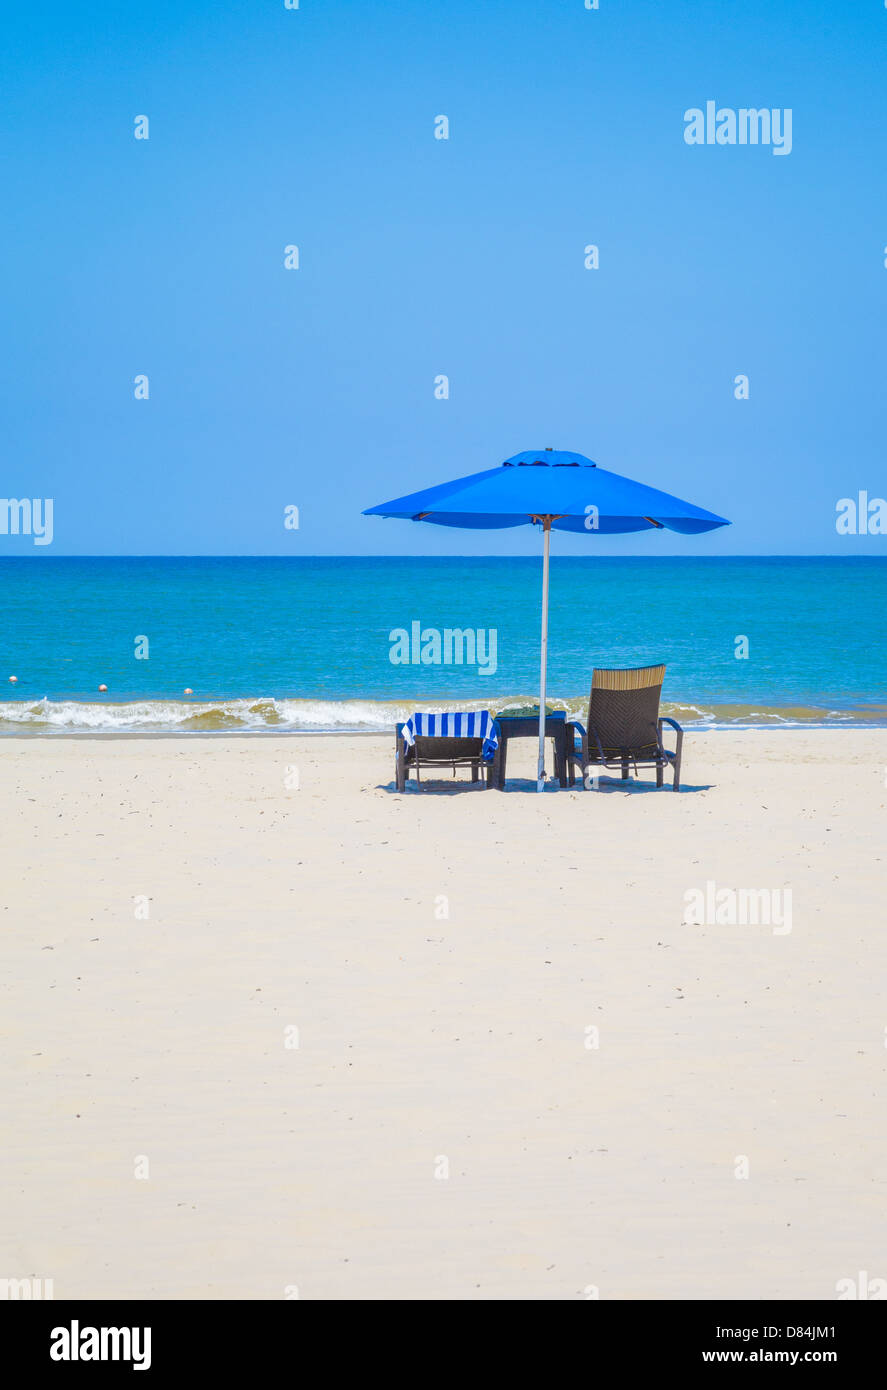 Blue sunshade and two loungers one with a hotel towel on the beach at Rasa Ria in Sabah Borneo - Stock Image